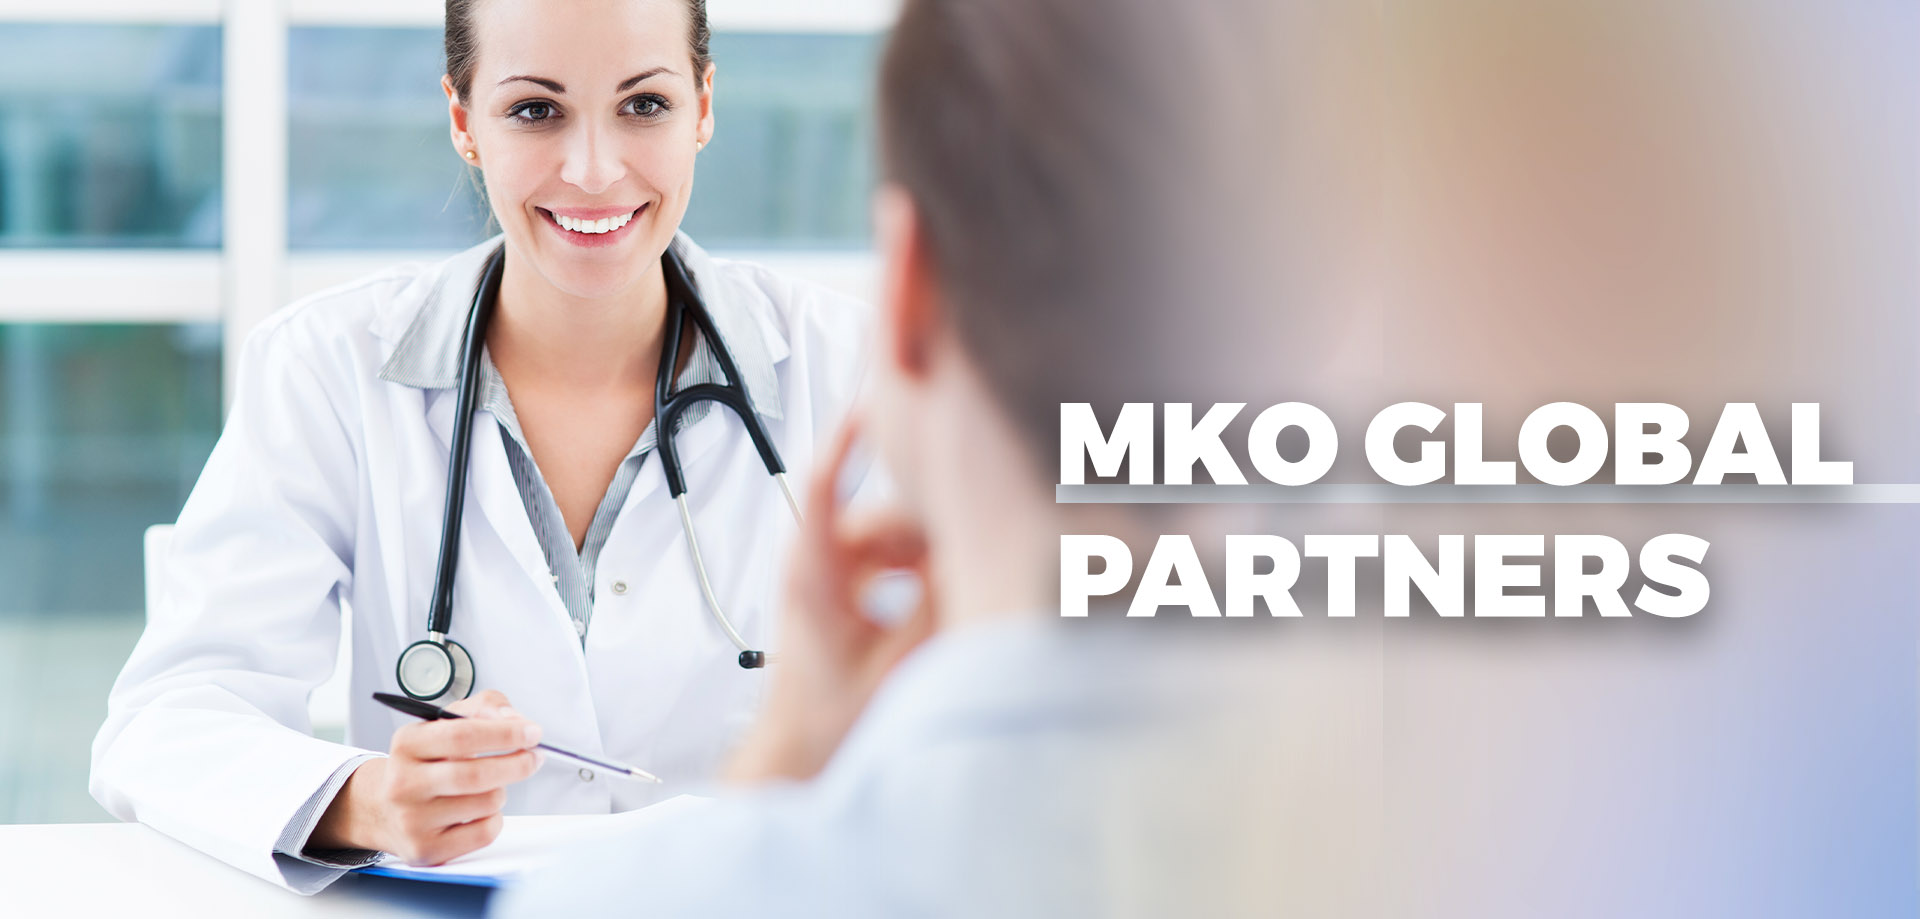 afterteam projects wordpress 07 mko global partners 2017 banner01